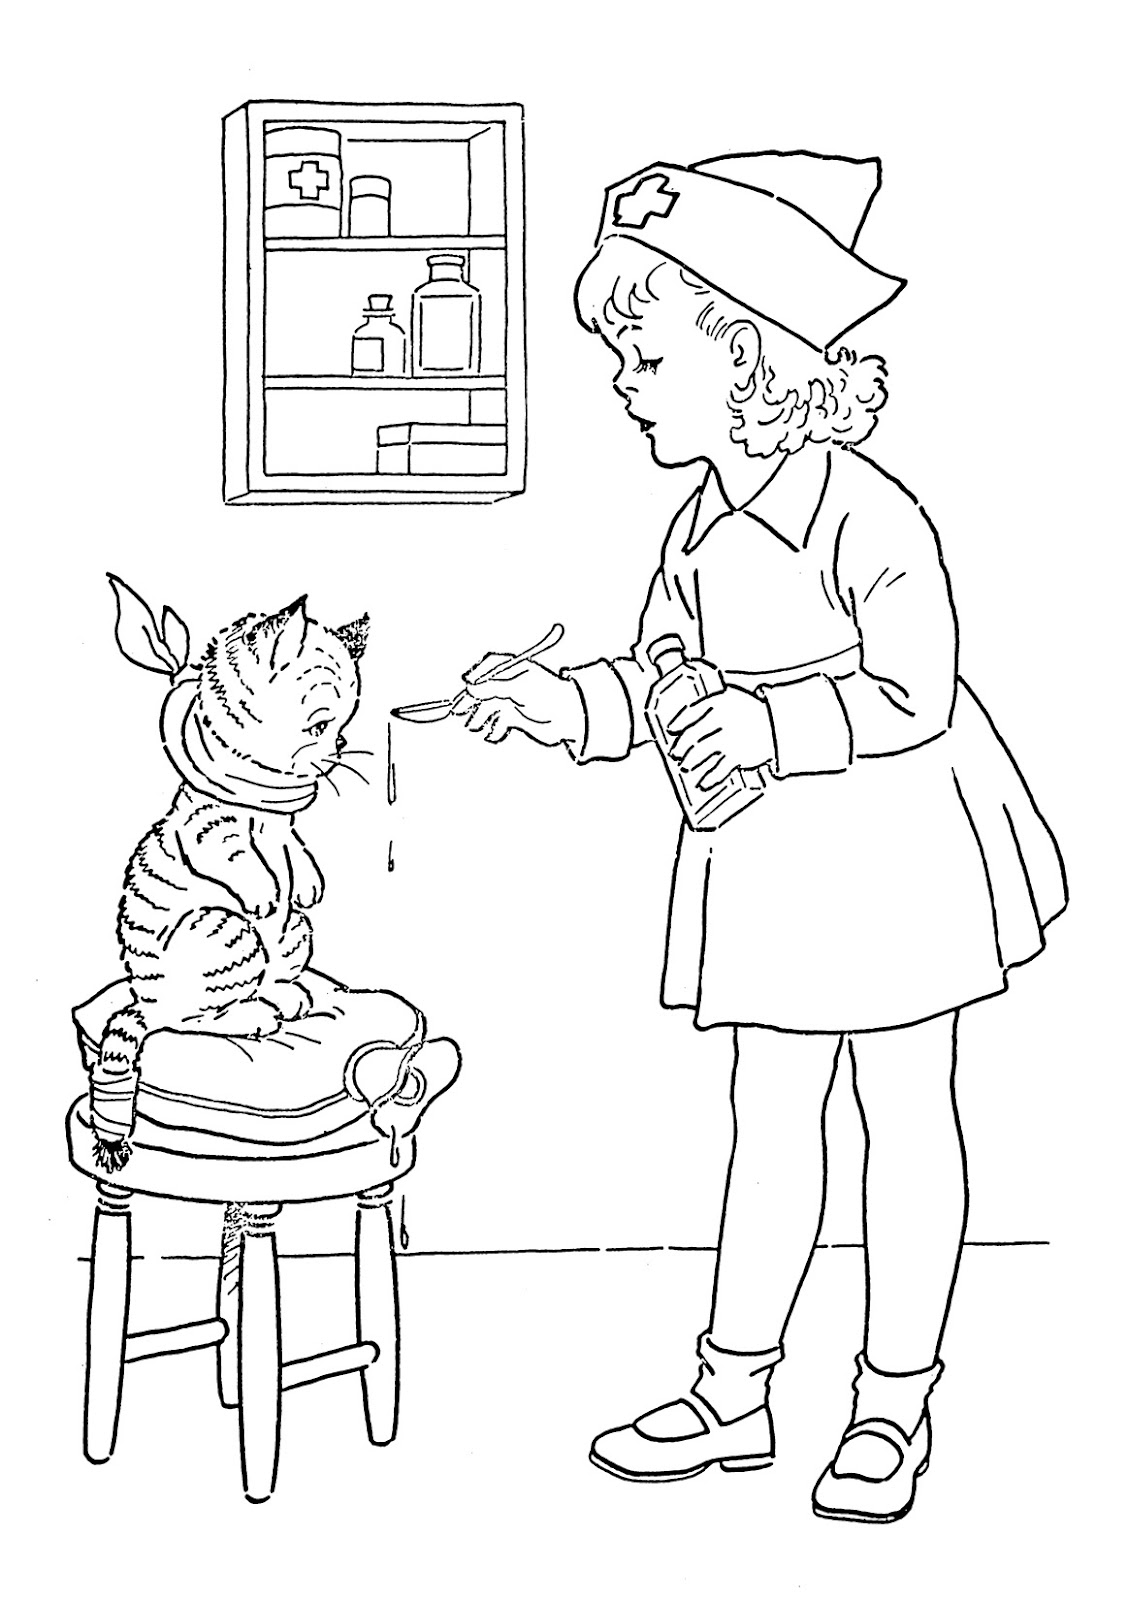 free printable coloring pages for older kids free free printable coloring pages for older girls kids printable for coloring free pages older